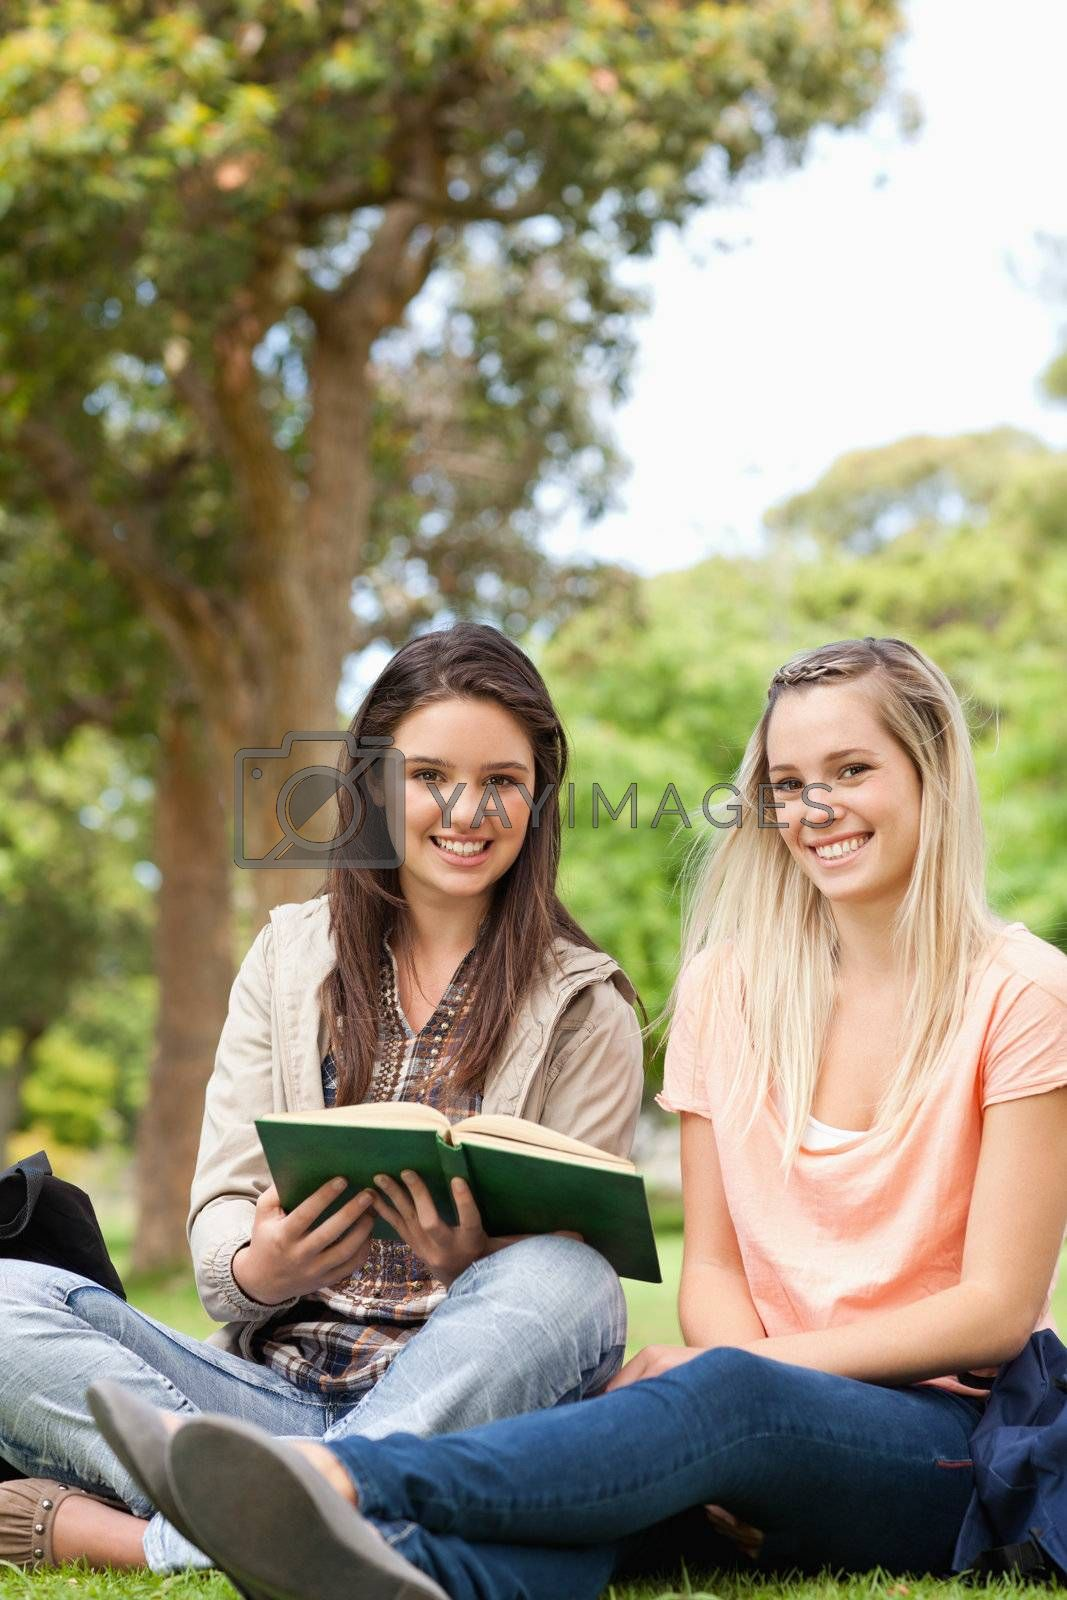 Cute teenagers sitting while studying with a textbook in a park